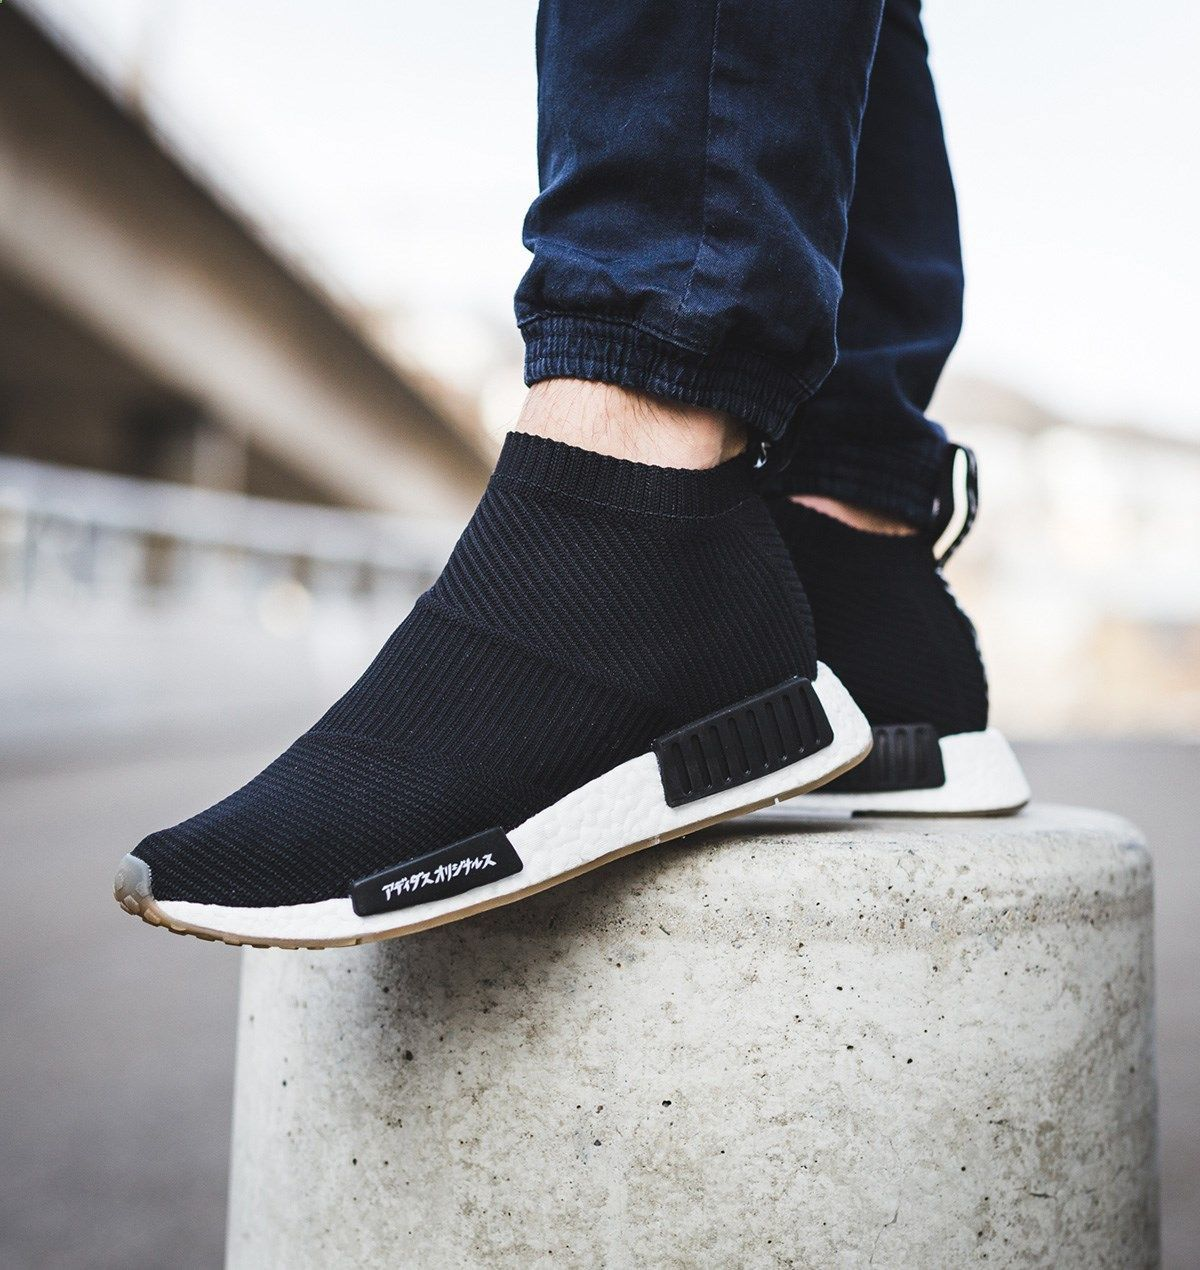 On-Foot  MIKITYPE x United Arrows Sons x adidas NMD CS1 Primeknit - EU  Kicks  Sneaker Magazine b5ae0b107